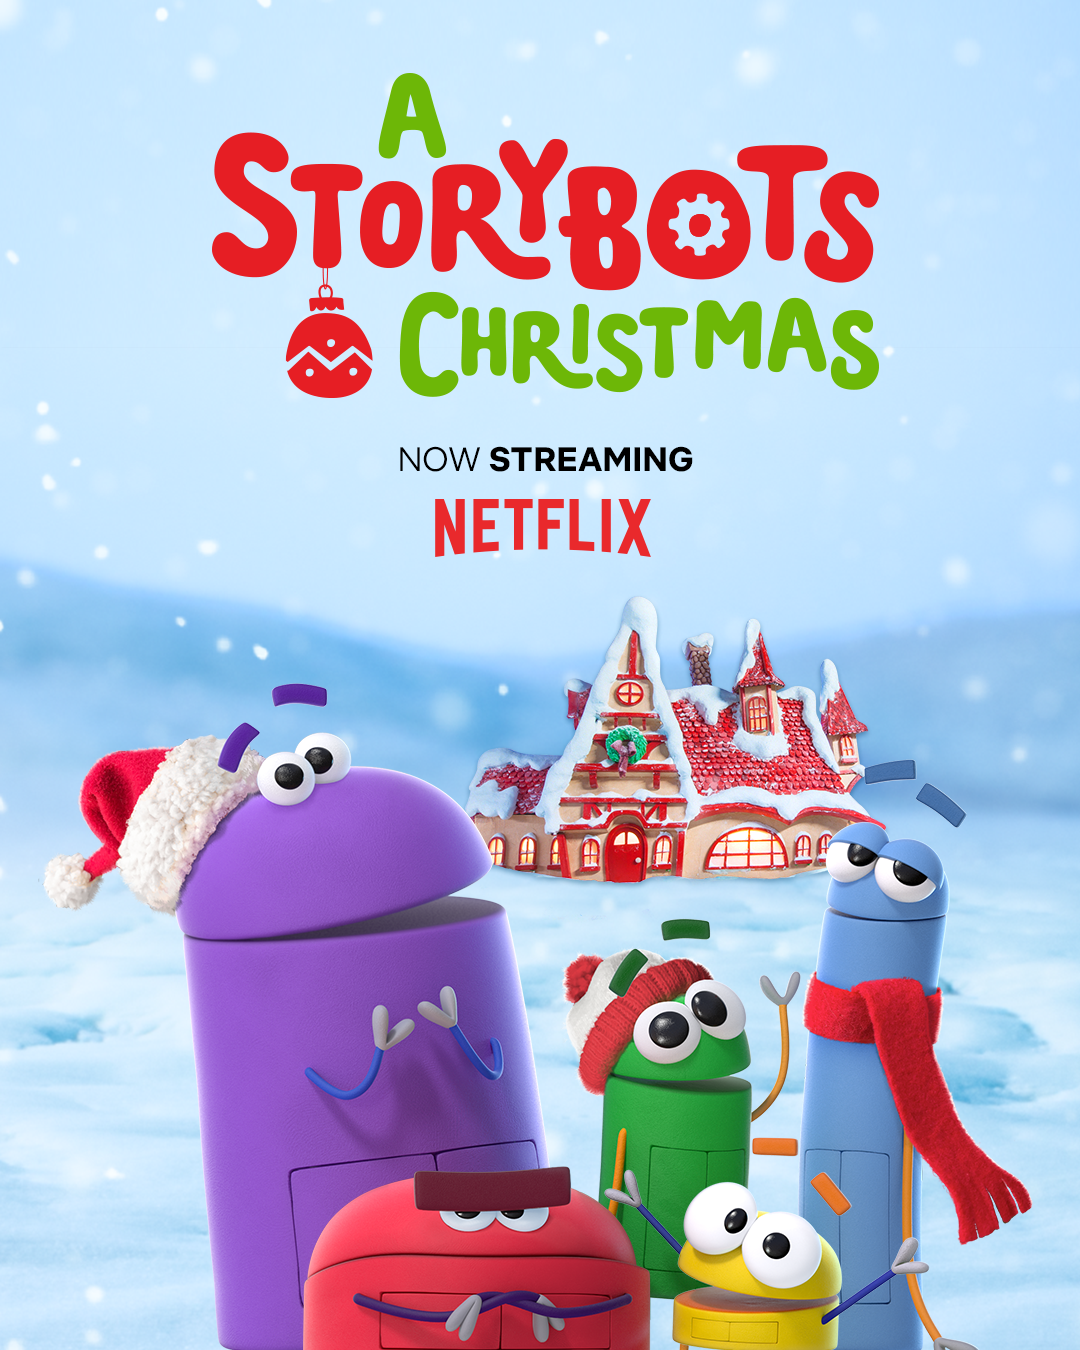 A STORYBOTS CHRISTMAS - In this Emmy Award-winning holiday special, the StoryBots head to the North Pole on an adventure to get help making better gifts… and end up learning from Santa Claus (guest star Ed Asner) that Christmas is about far more than just toys and presents.